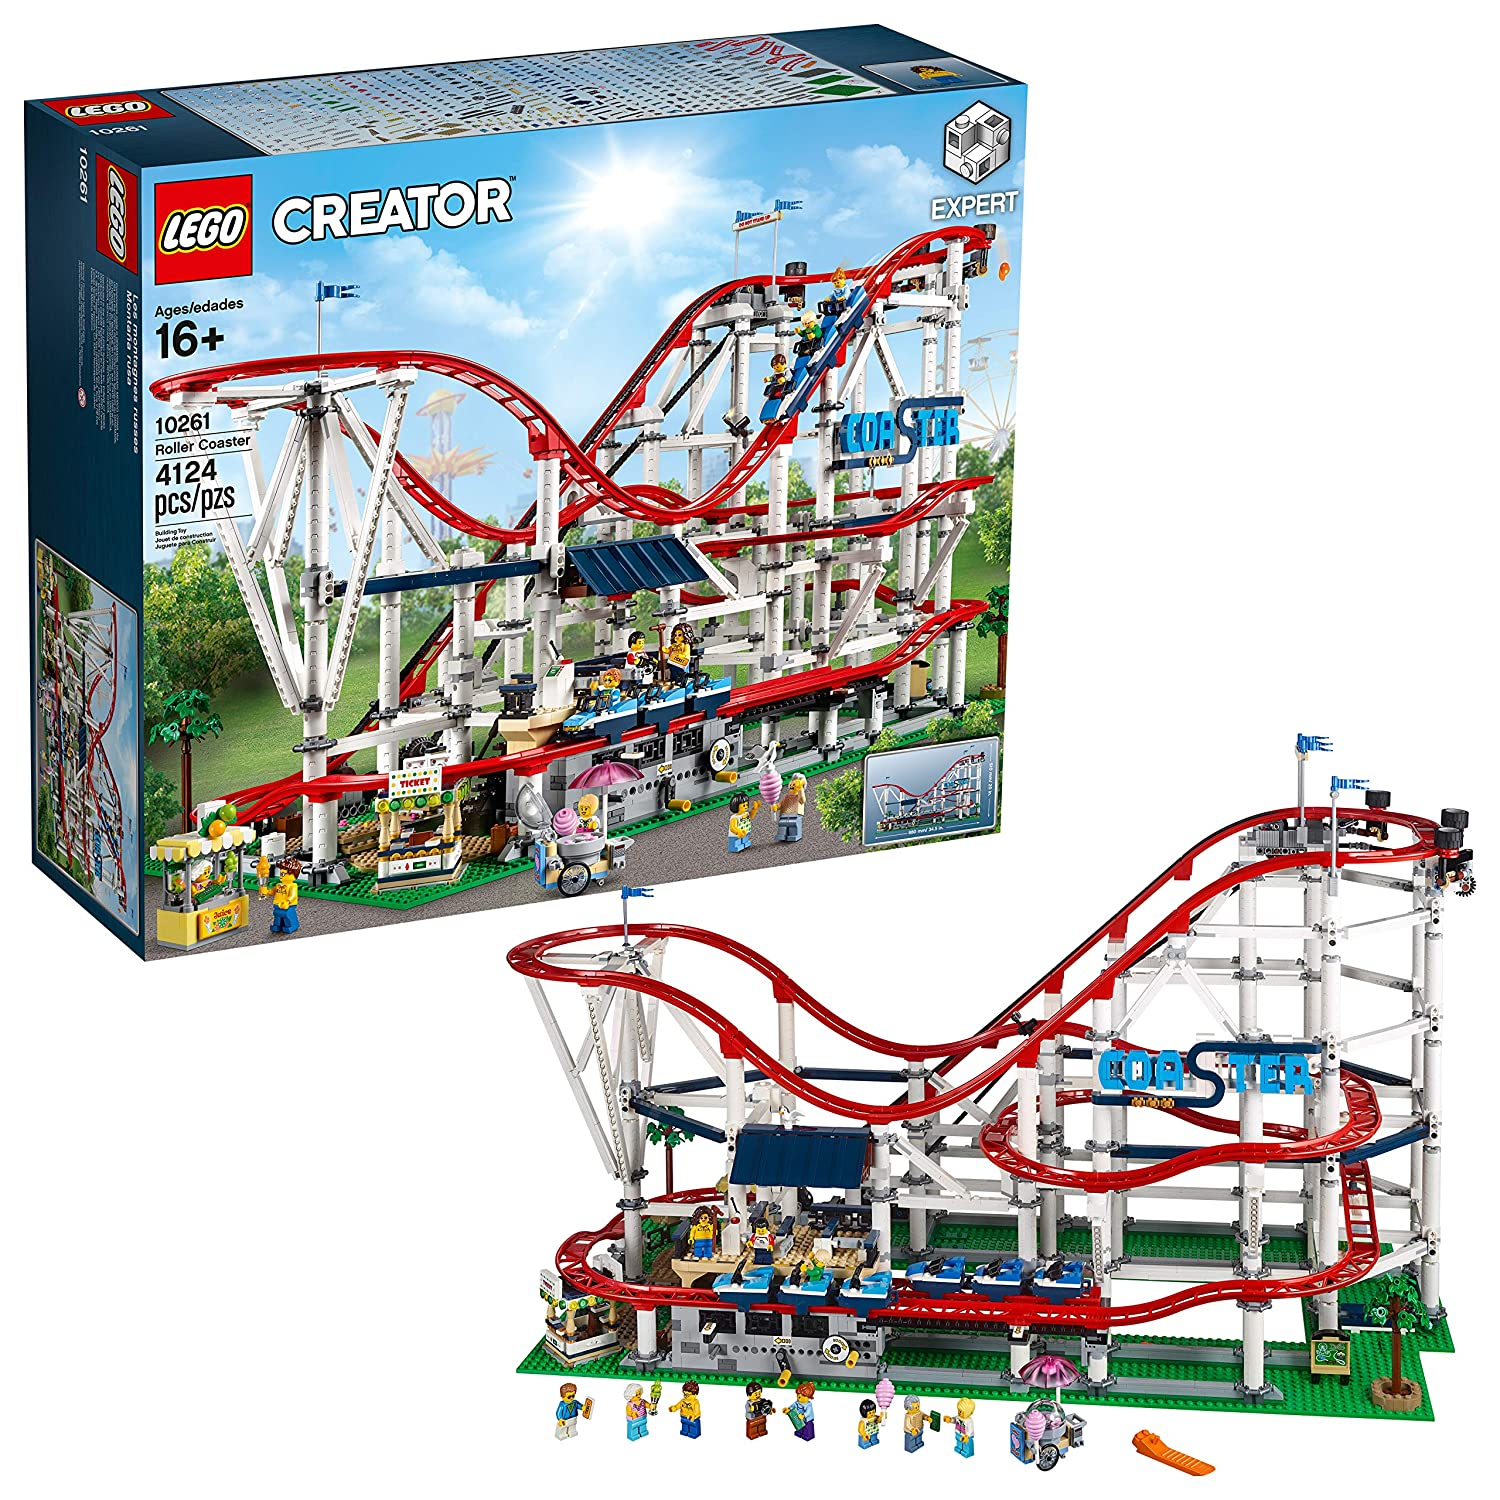 Top 5 Best Lego Roller Coaster Reviews in 2021 6